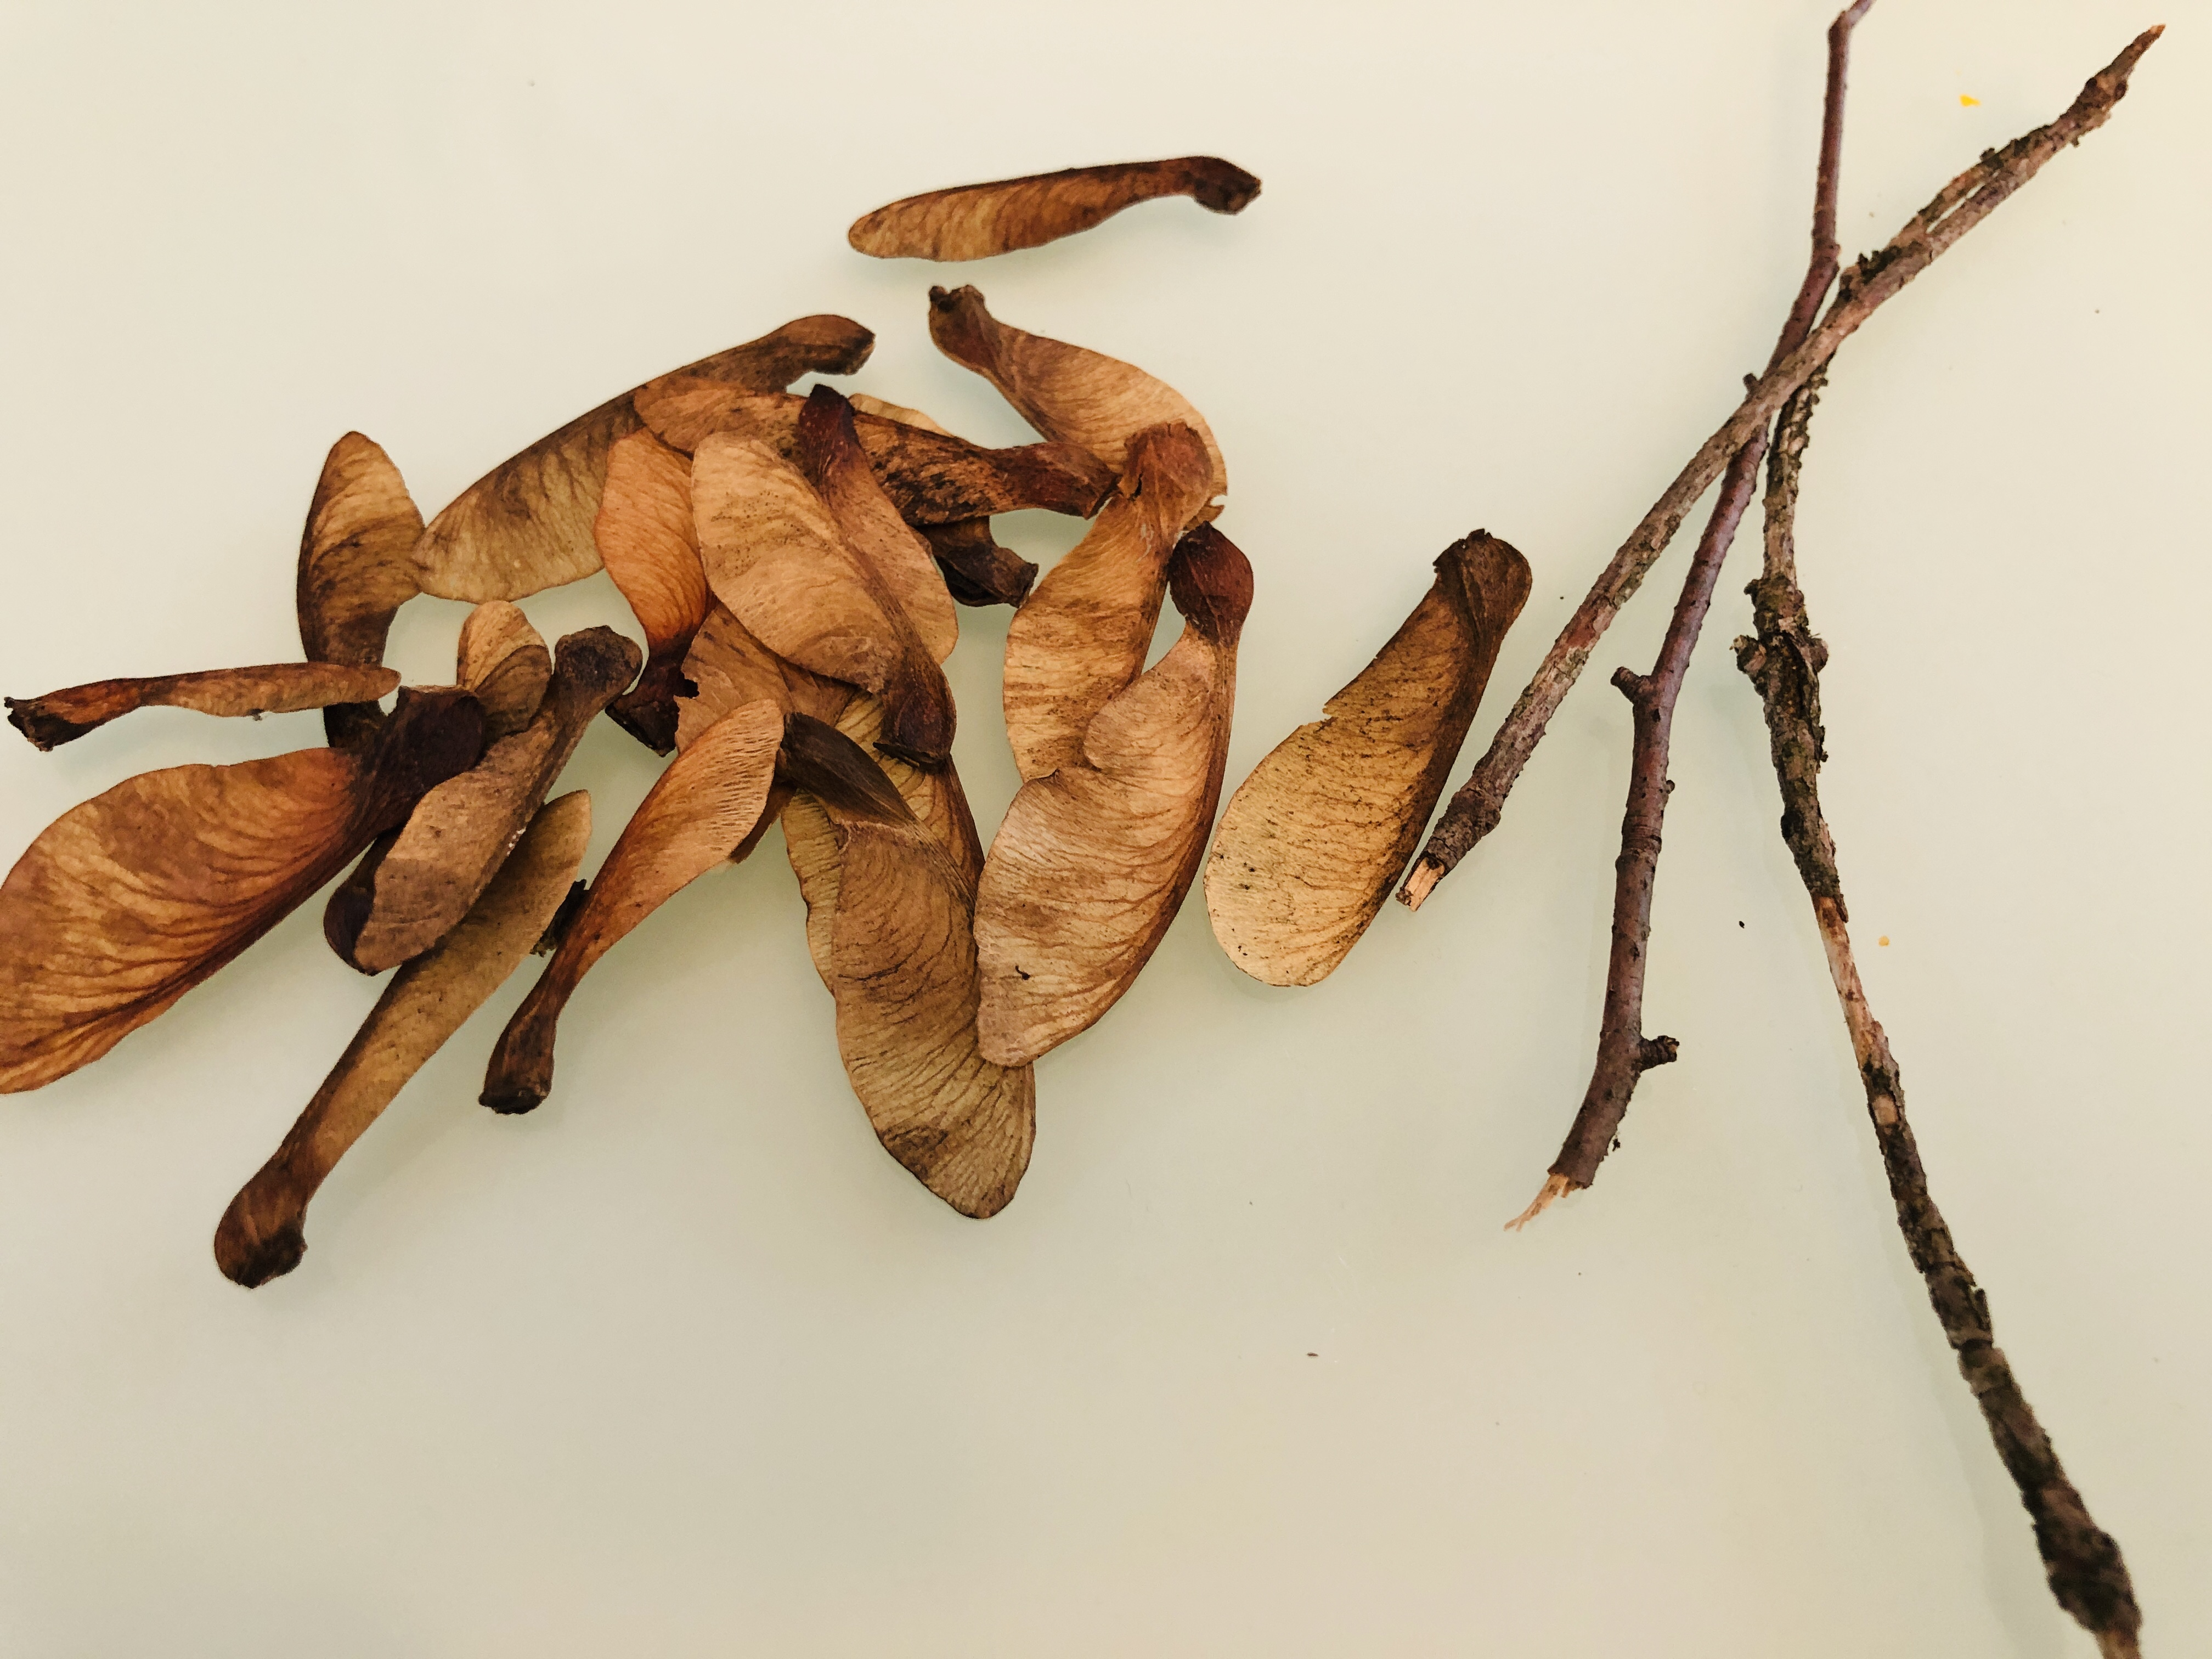 twigs and seeds for making dragonflies